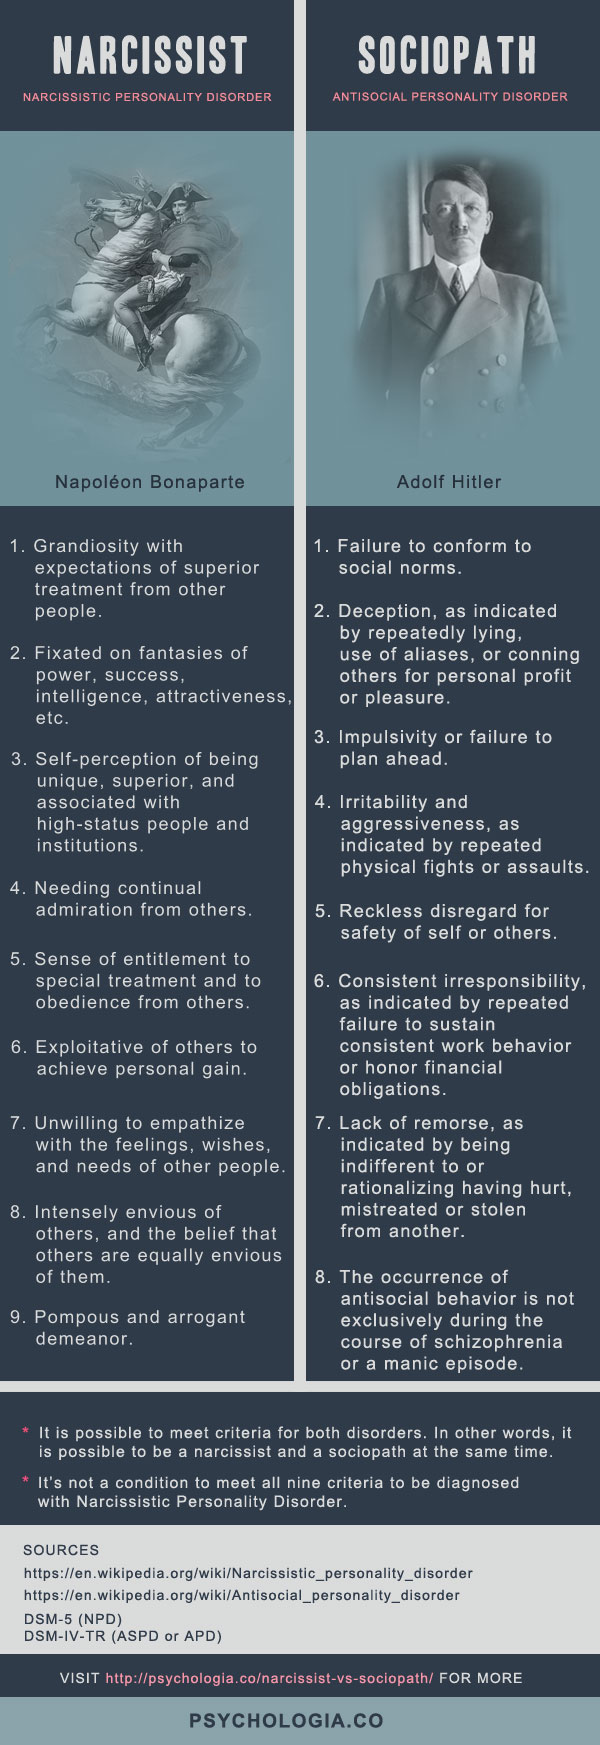 Narcissist vs. Sociopath: The Difference Explained | Psychologia